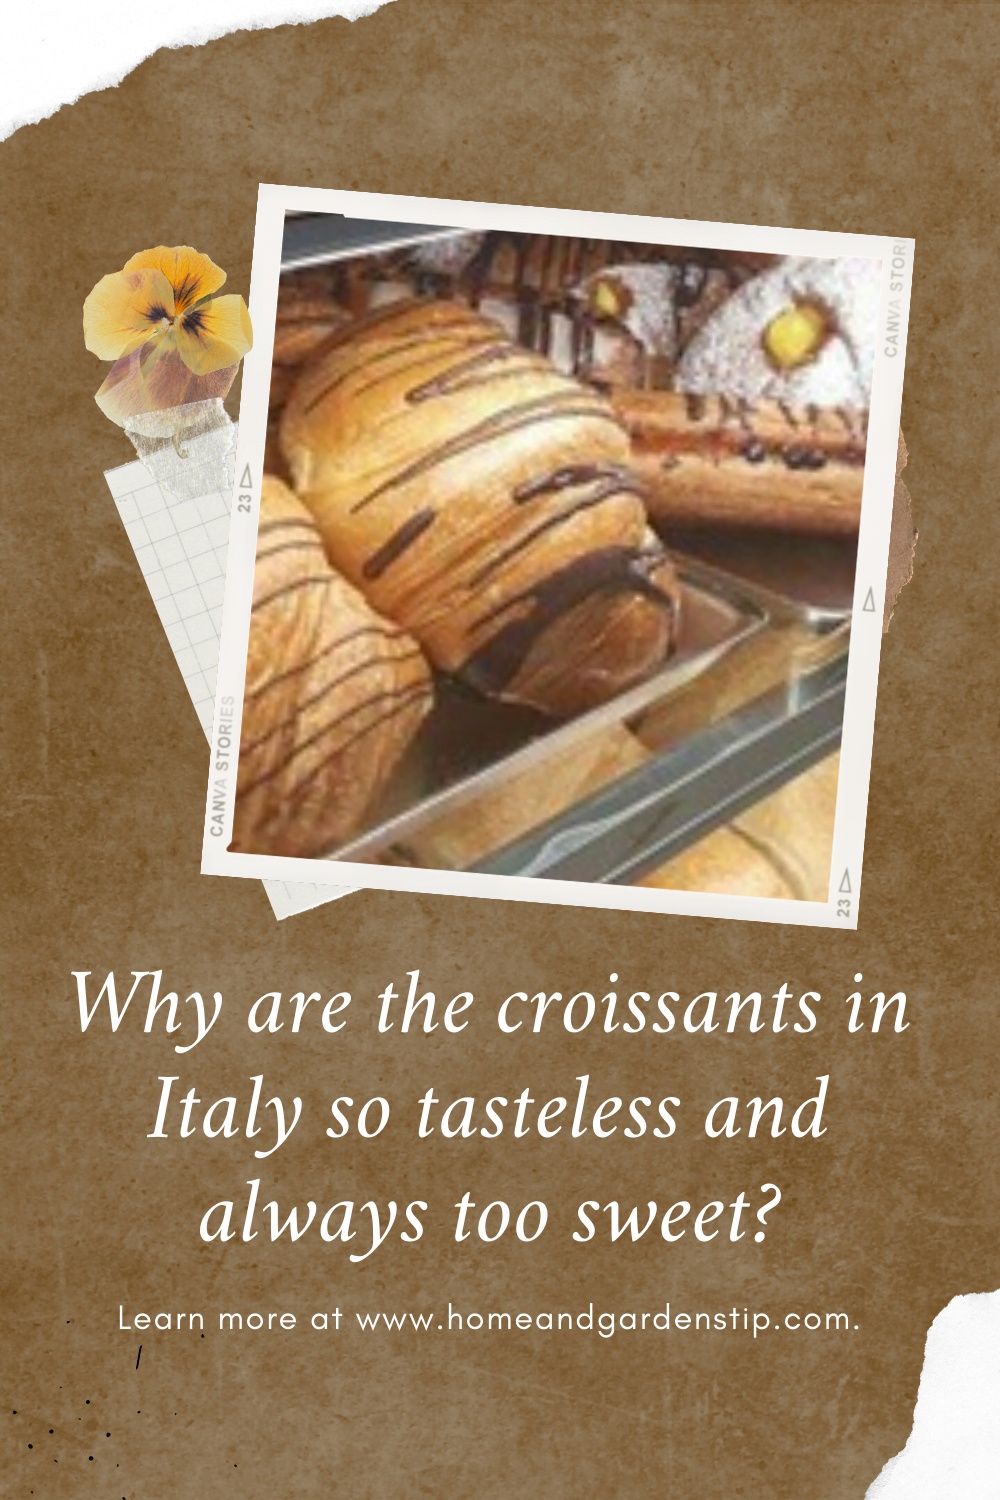 You are currently viewing Why are the croissants in Italy so tasteless and always too sweet?